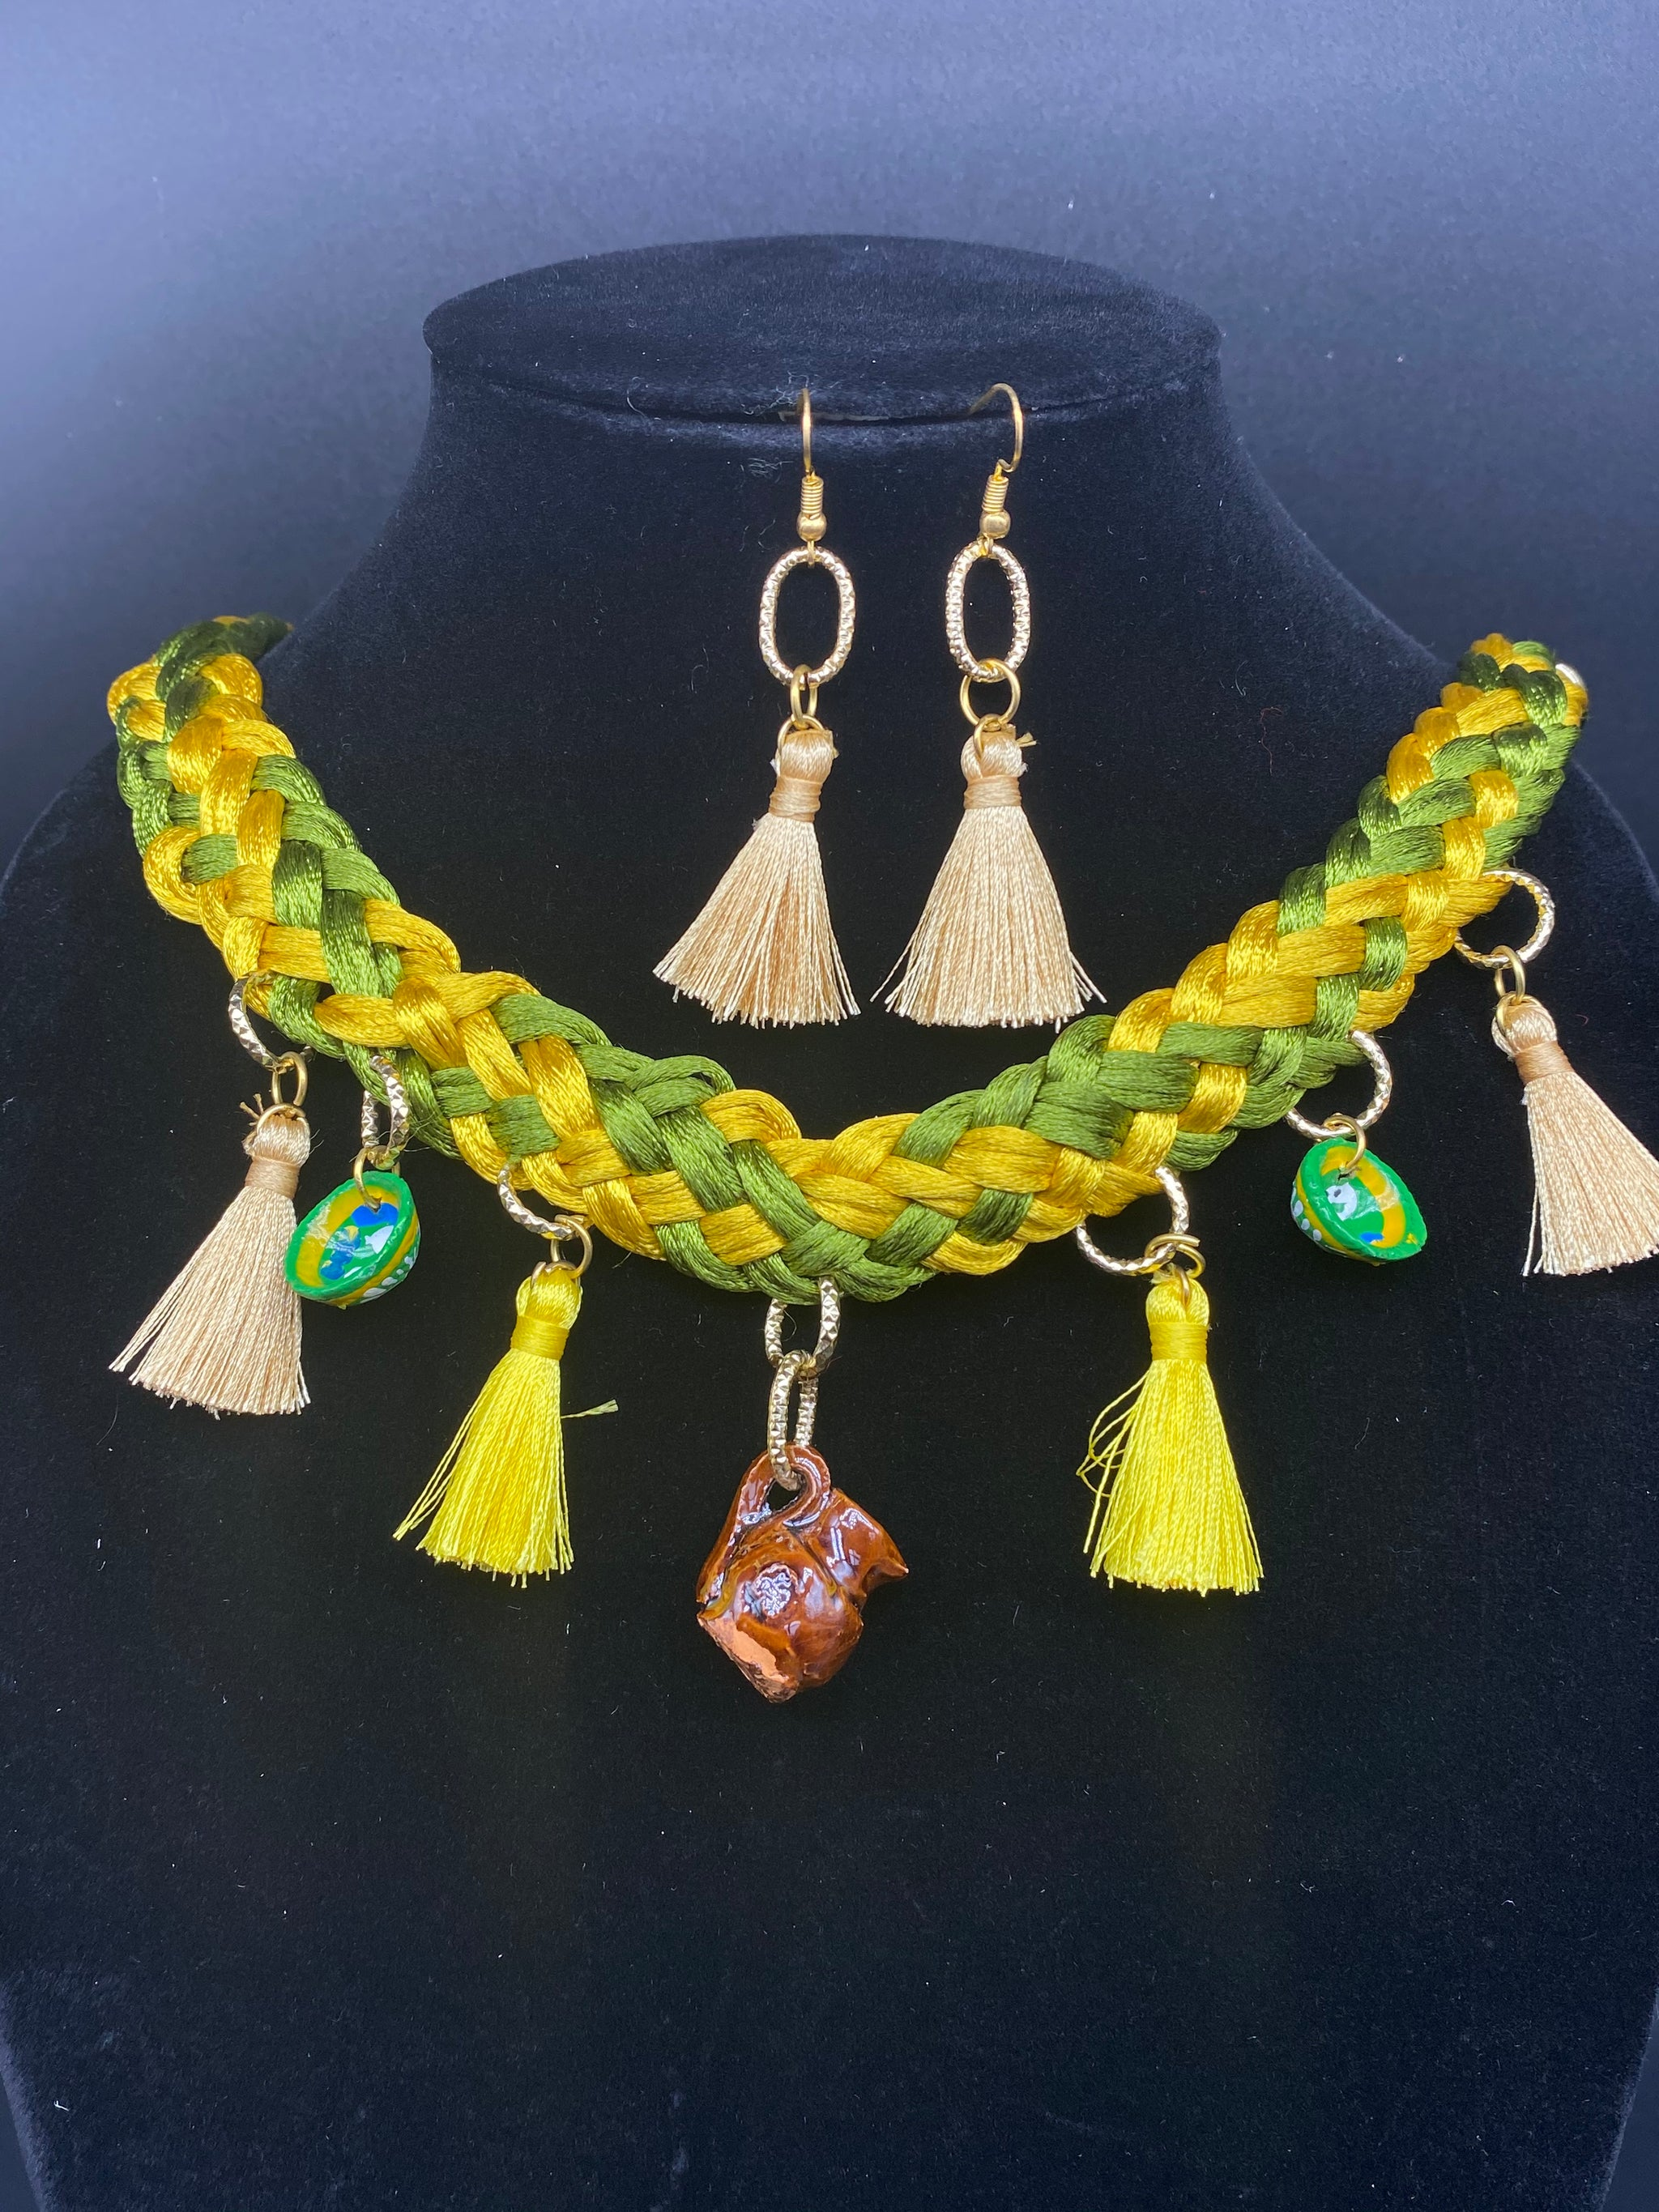 Wonderful Mexican Artisan Set of Necklace and Earrings - Corazón Clothing